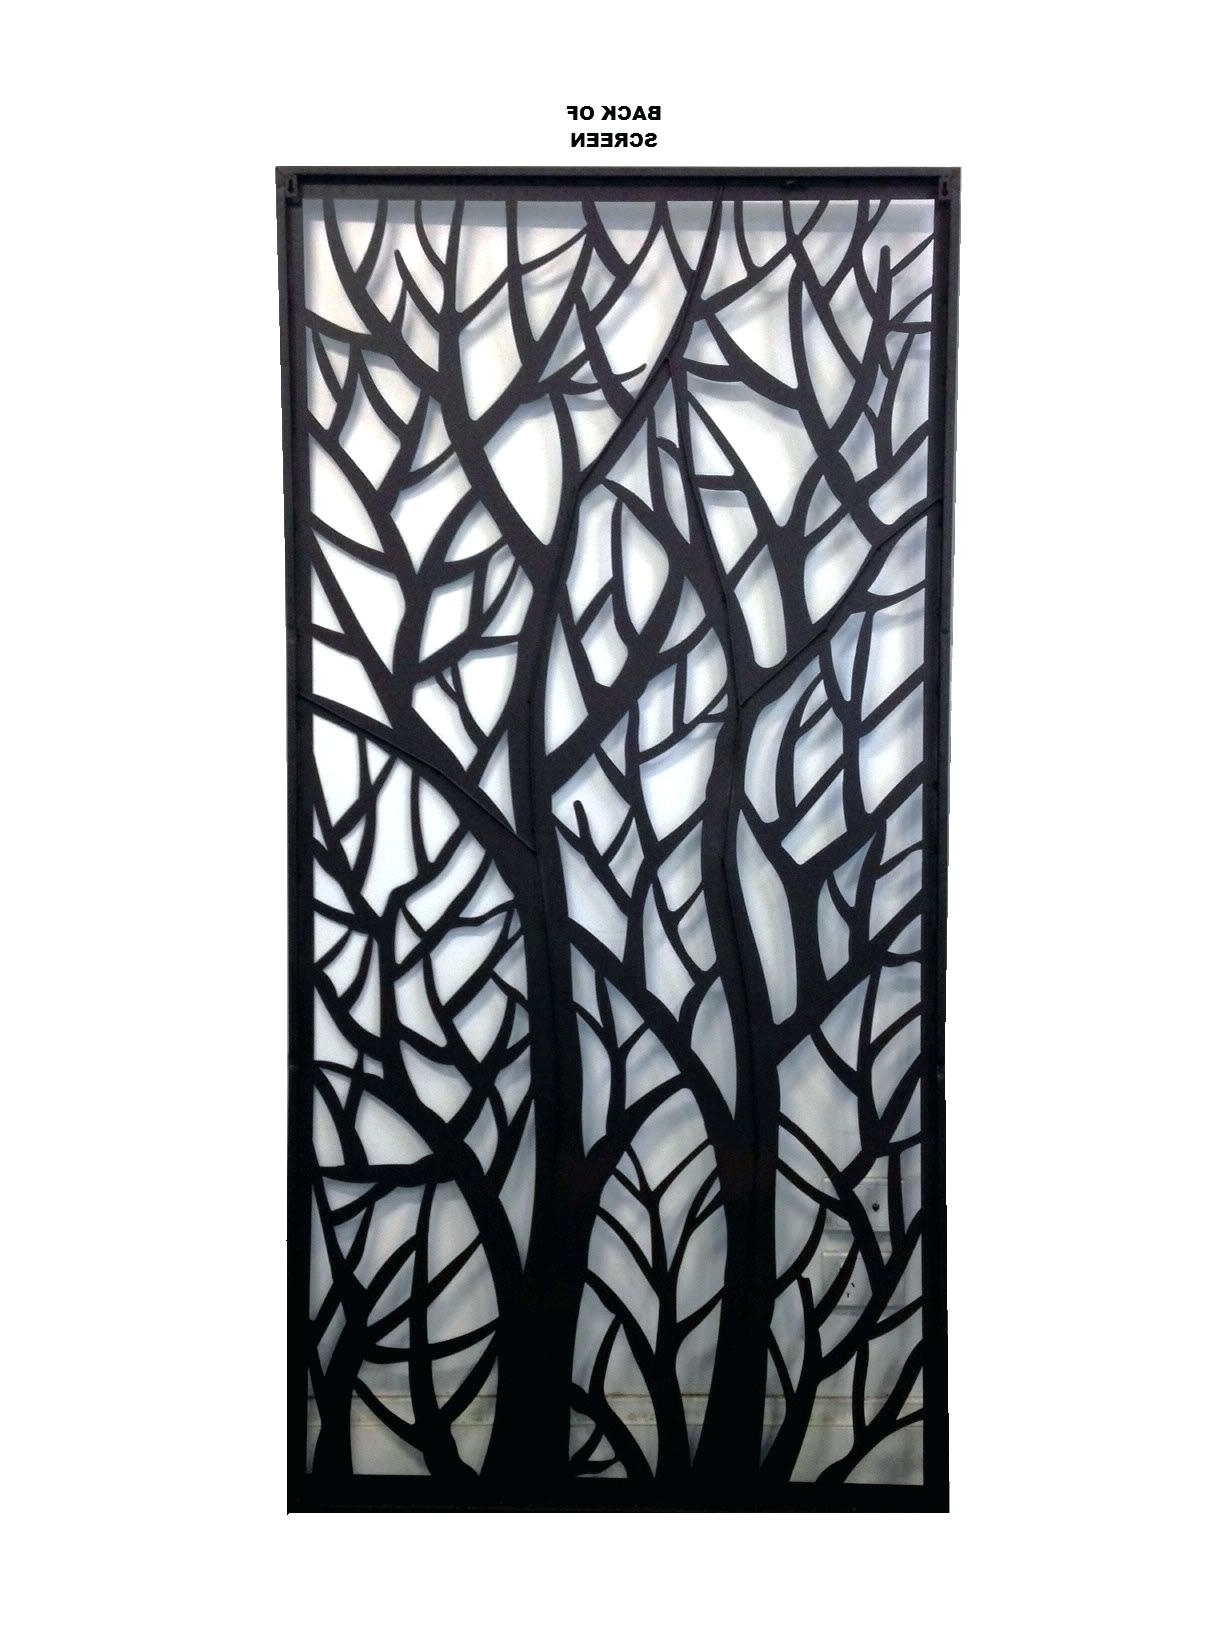 Decorative Metal Screens Wall Art Garden Ebaydecorative Bunnings With Regard To Well Liked Decorative Outdoor Metal Wall Art (View 2 of 15)